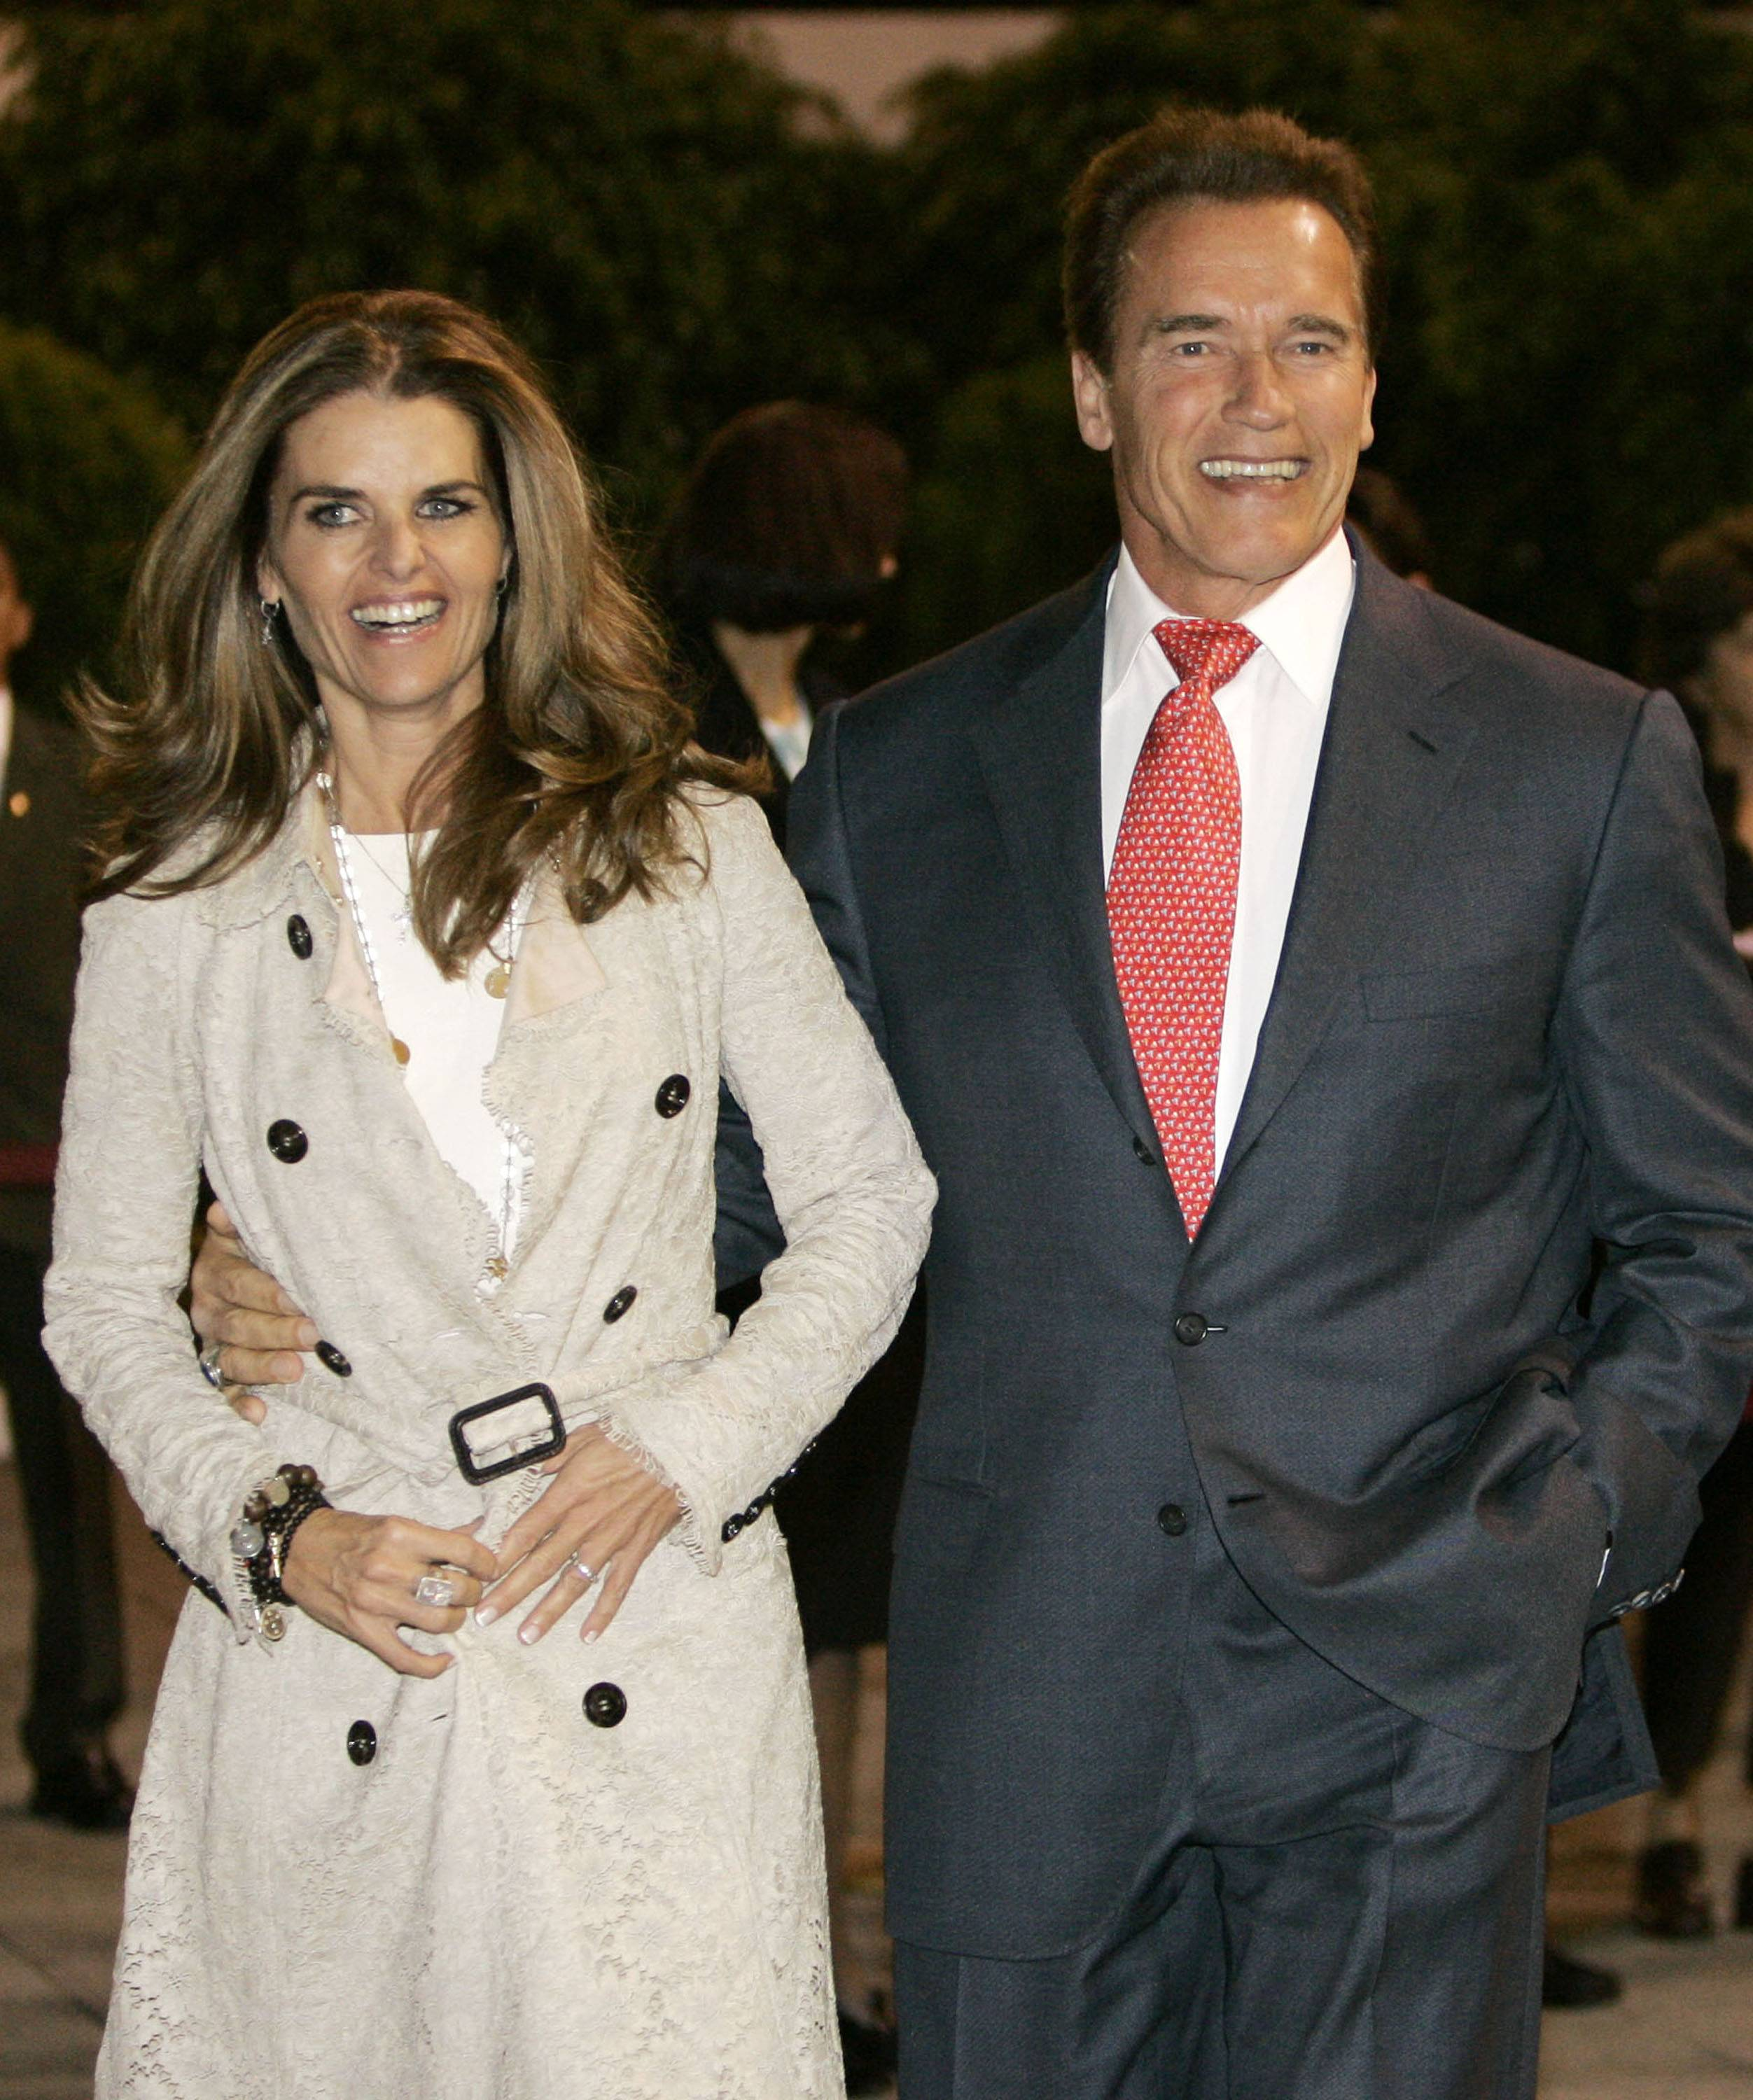 Maria Shriver has filed for divorce from Arnold Schwarzenegger in Los Angeles Superior Court Friday.